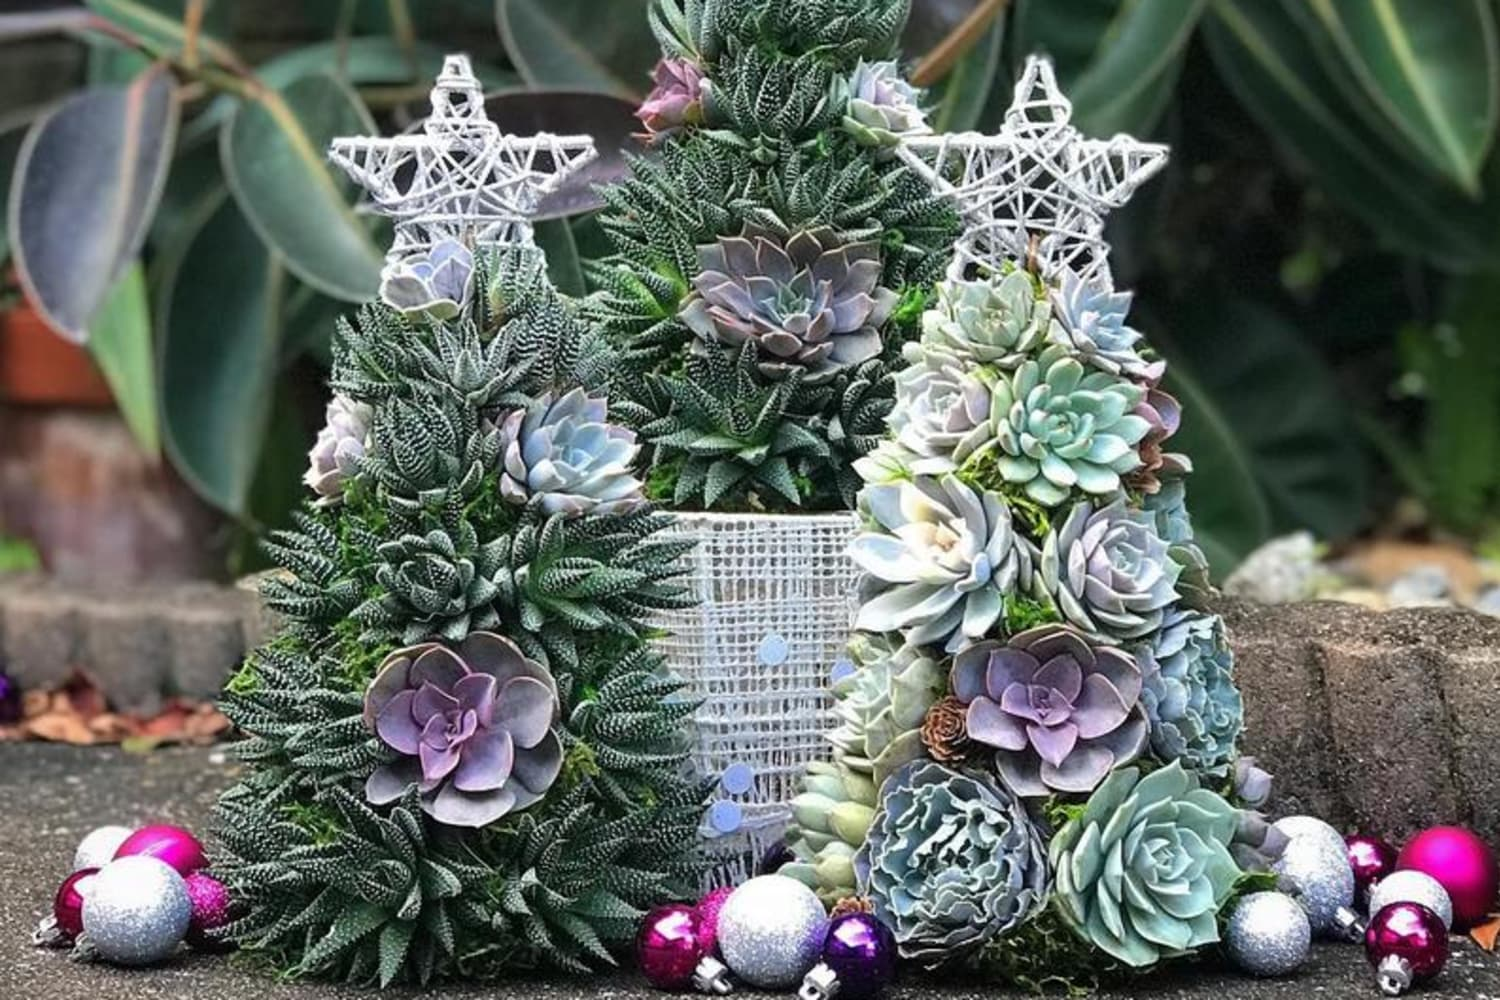 Succulent Christmas Trees Are the Perfect Holiday Trend for Plant Lovers